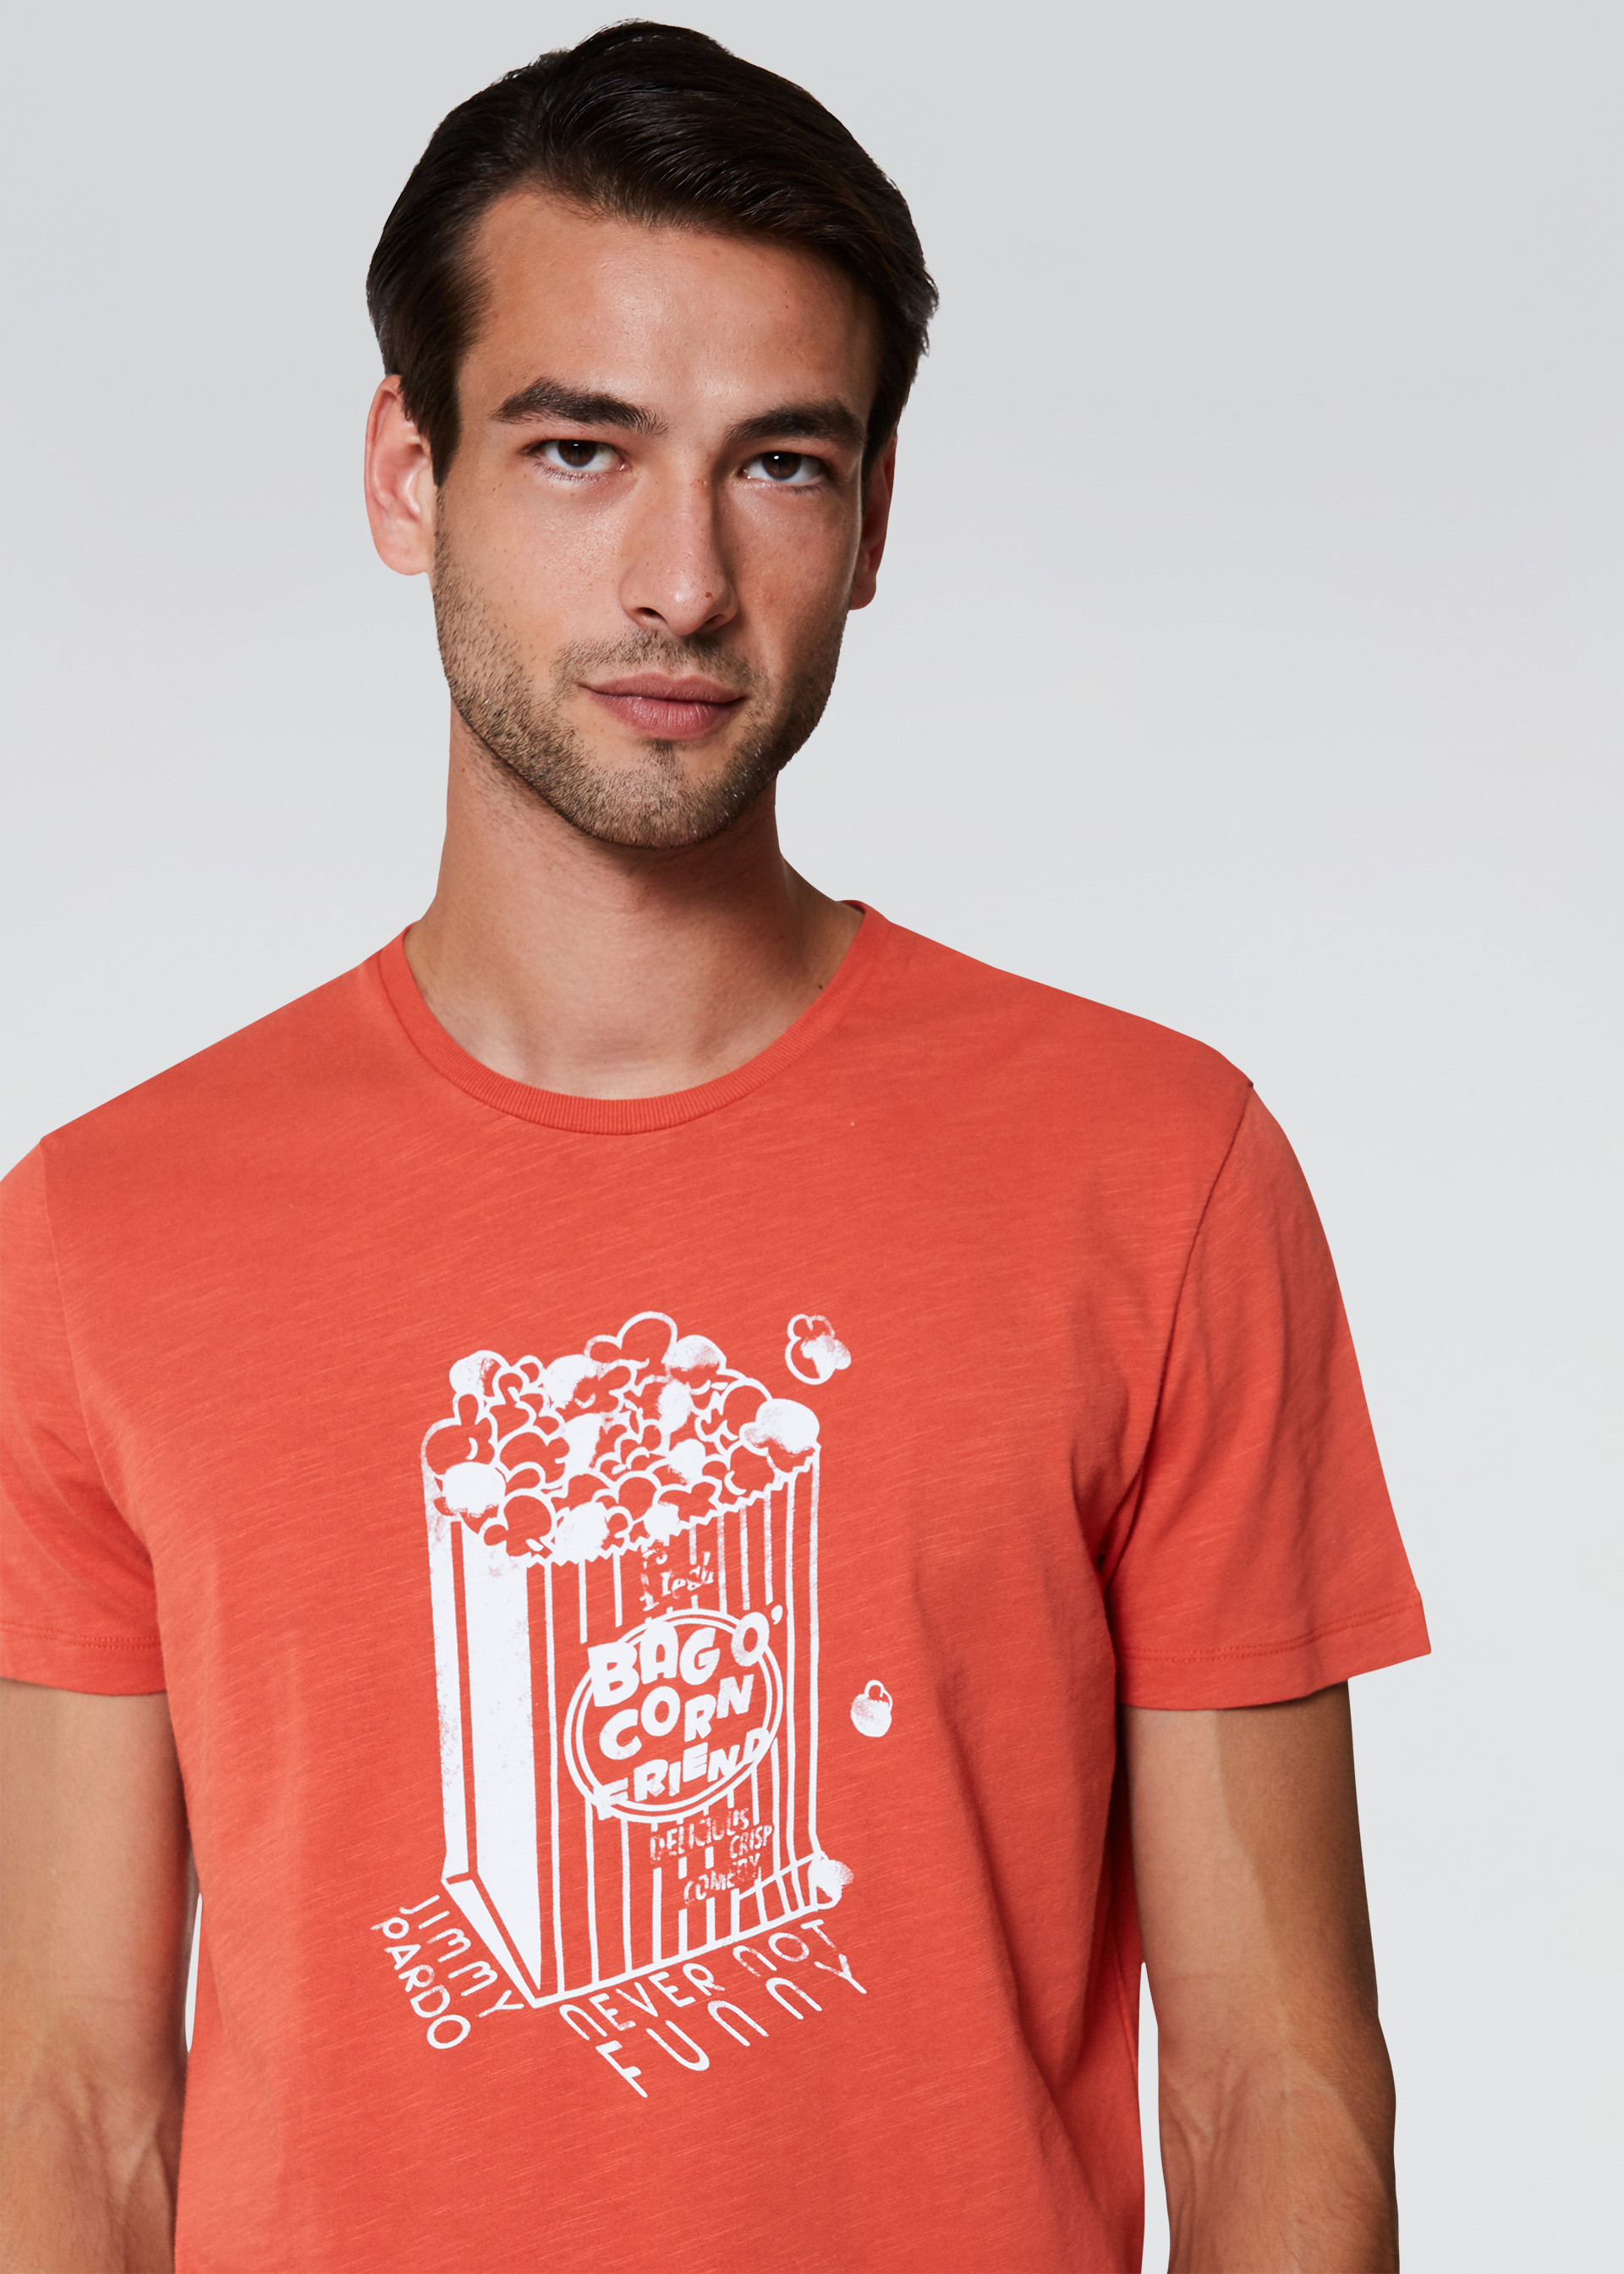 T-shirt stampa pop corn